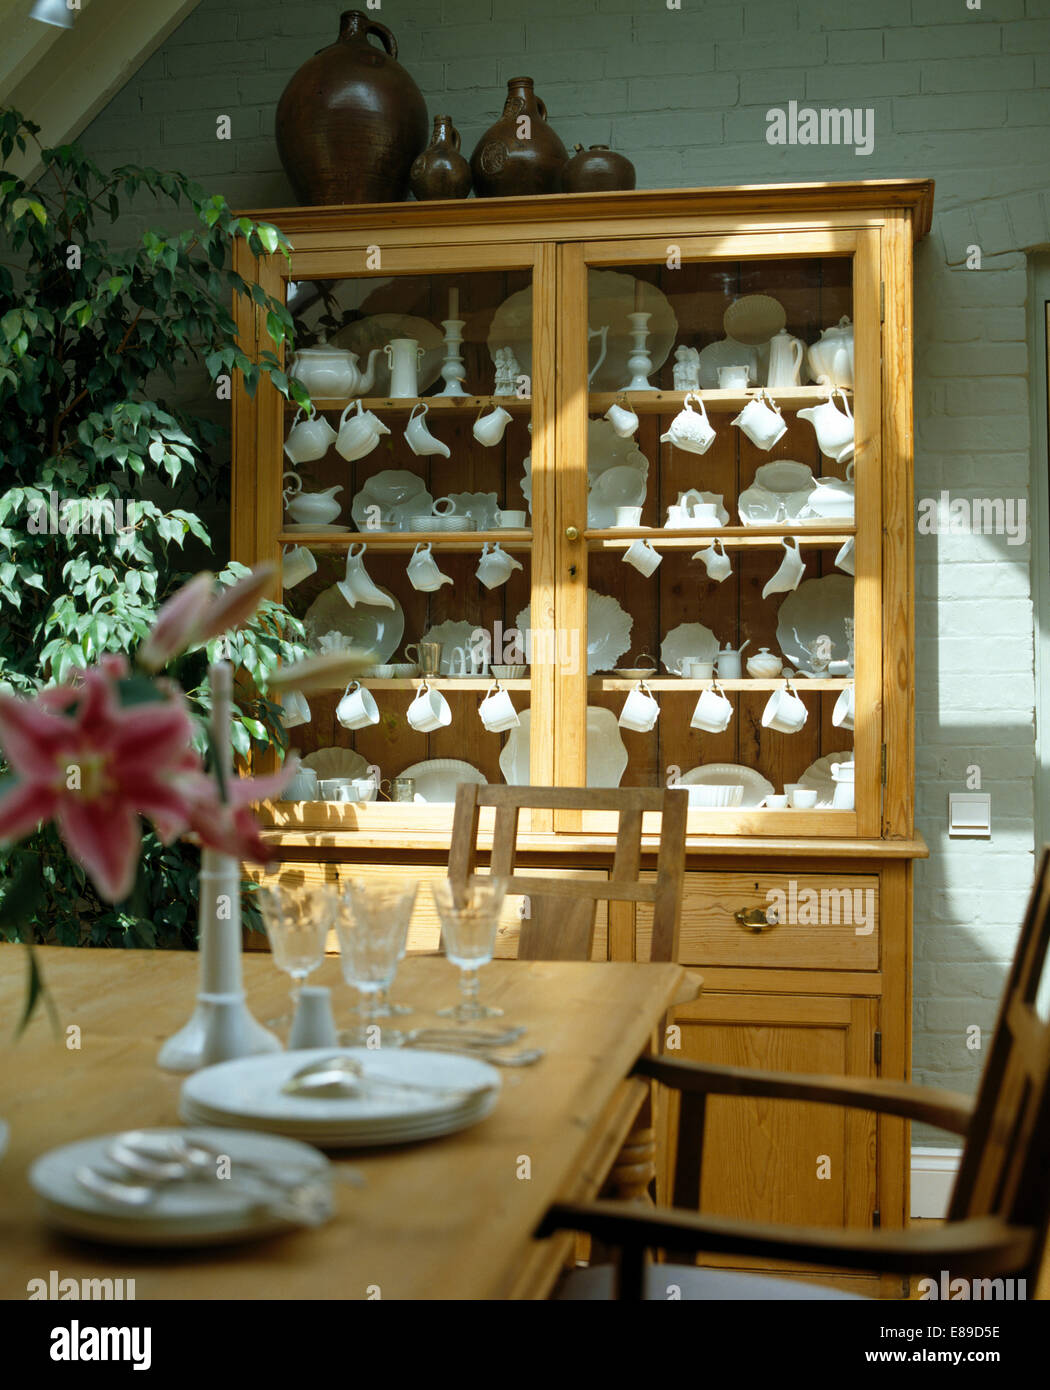 Old Pine Dresser With Collection Of White China Behind Glass Doors In Pale Green Dining Room